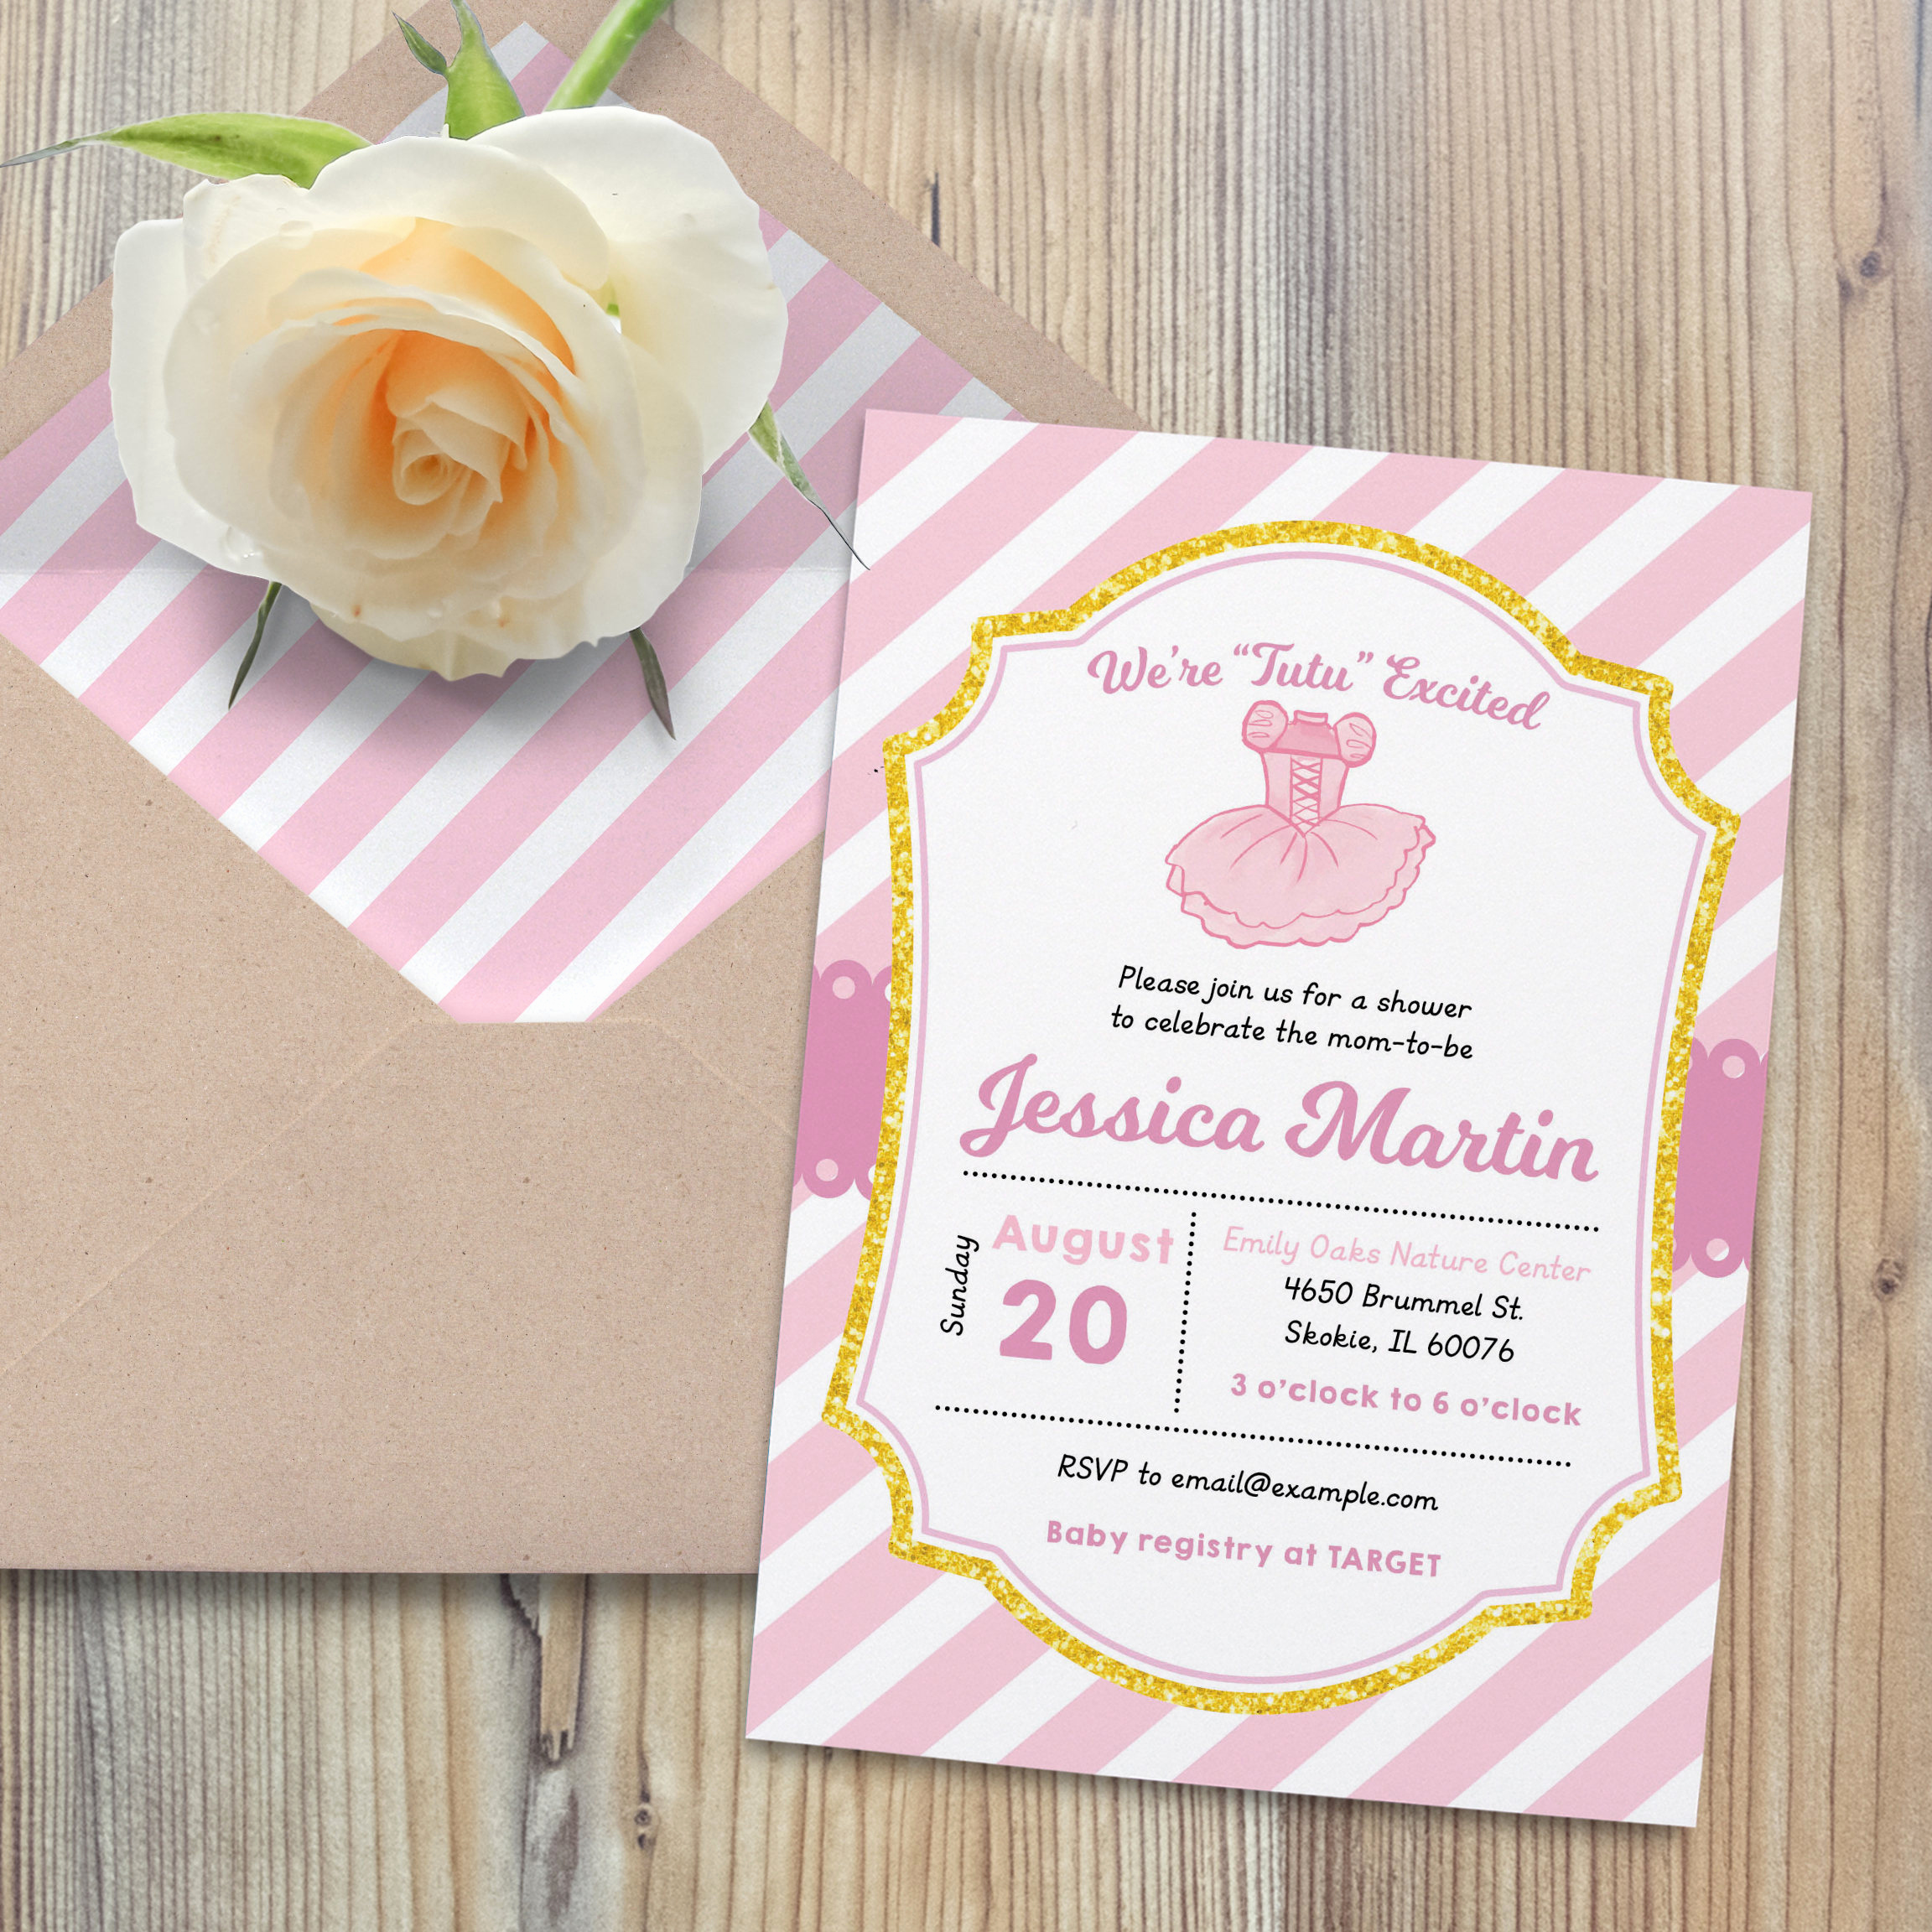 Tutu Baby Shower Invitation Lovely Tutu Baby Shower Invitation Ballerina Baby Shower Invite